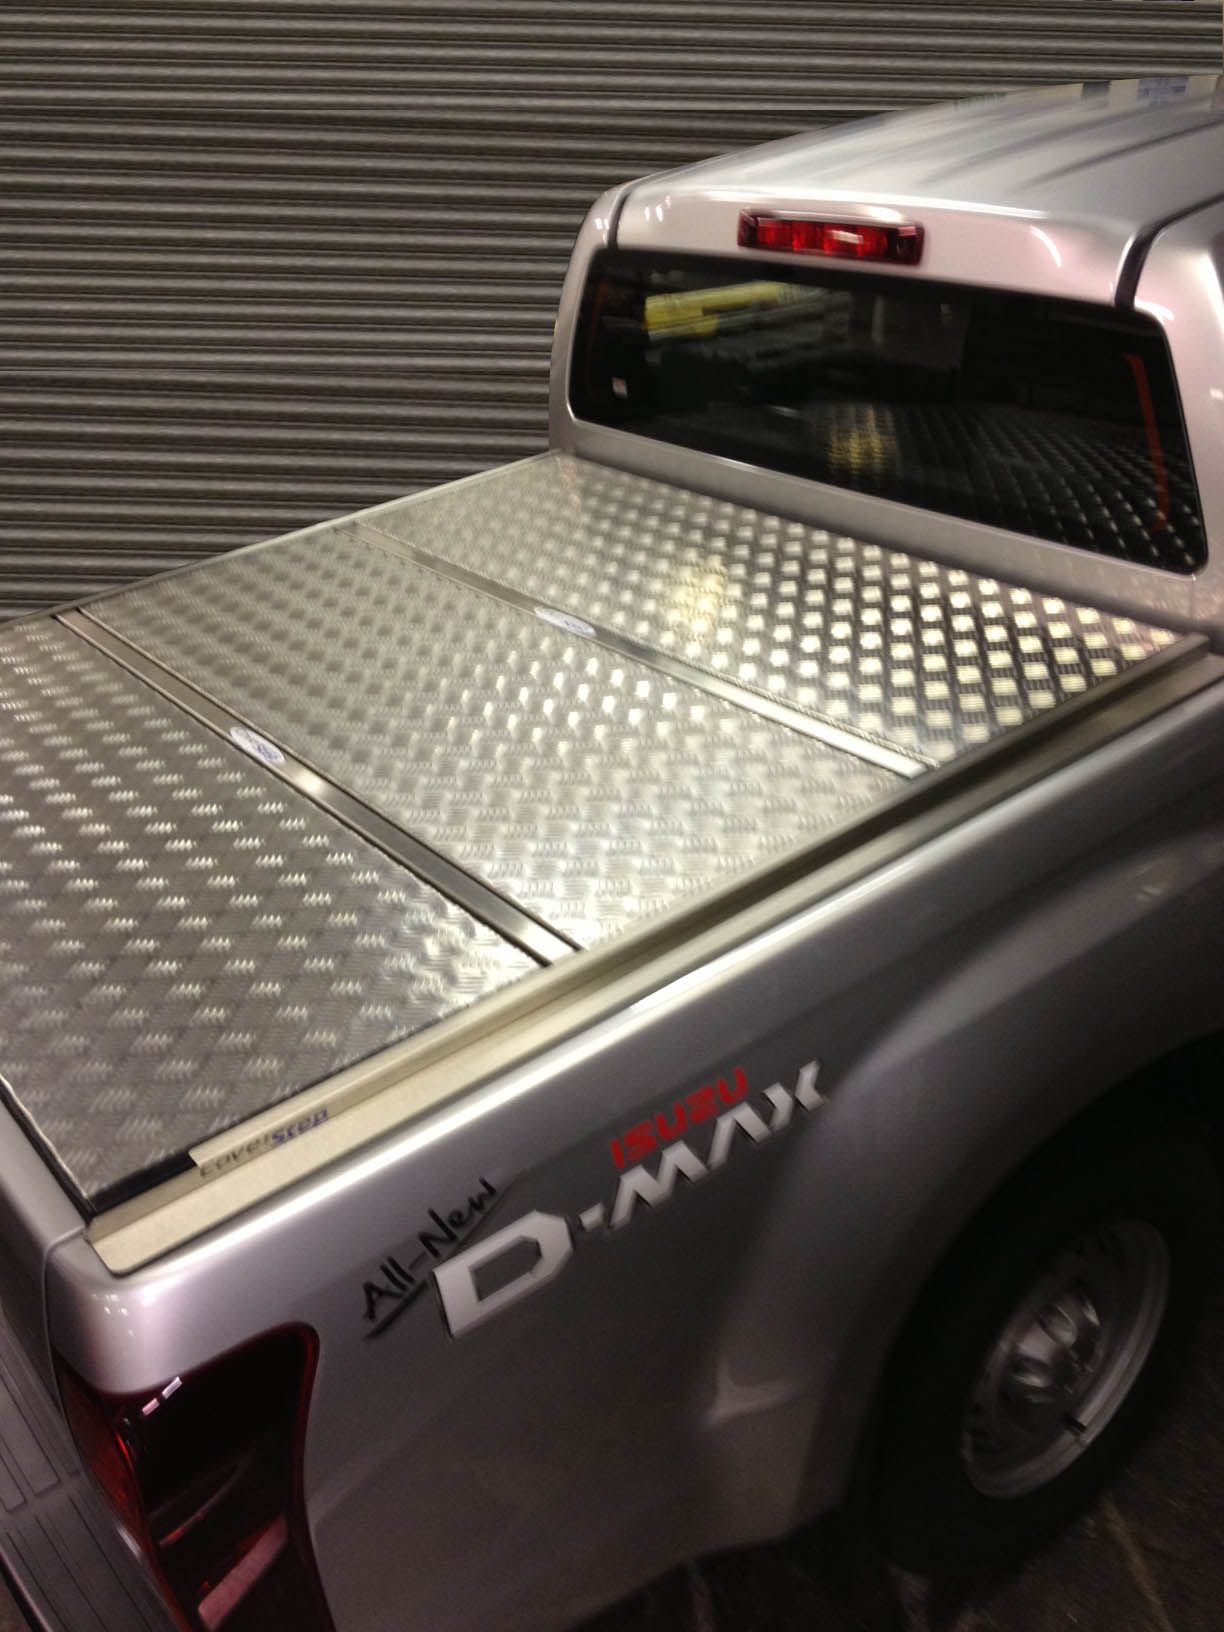 Coverstep Modular Tonneau Cover For Your Pickup Truck Pickup